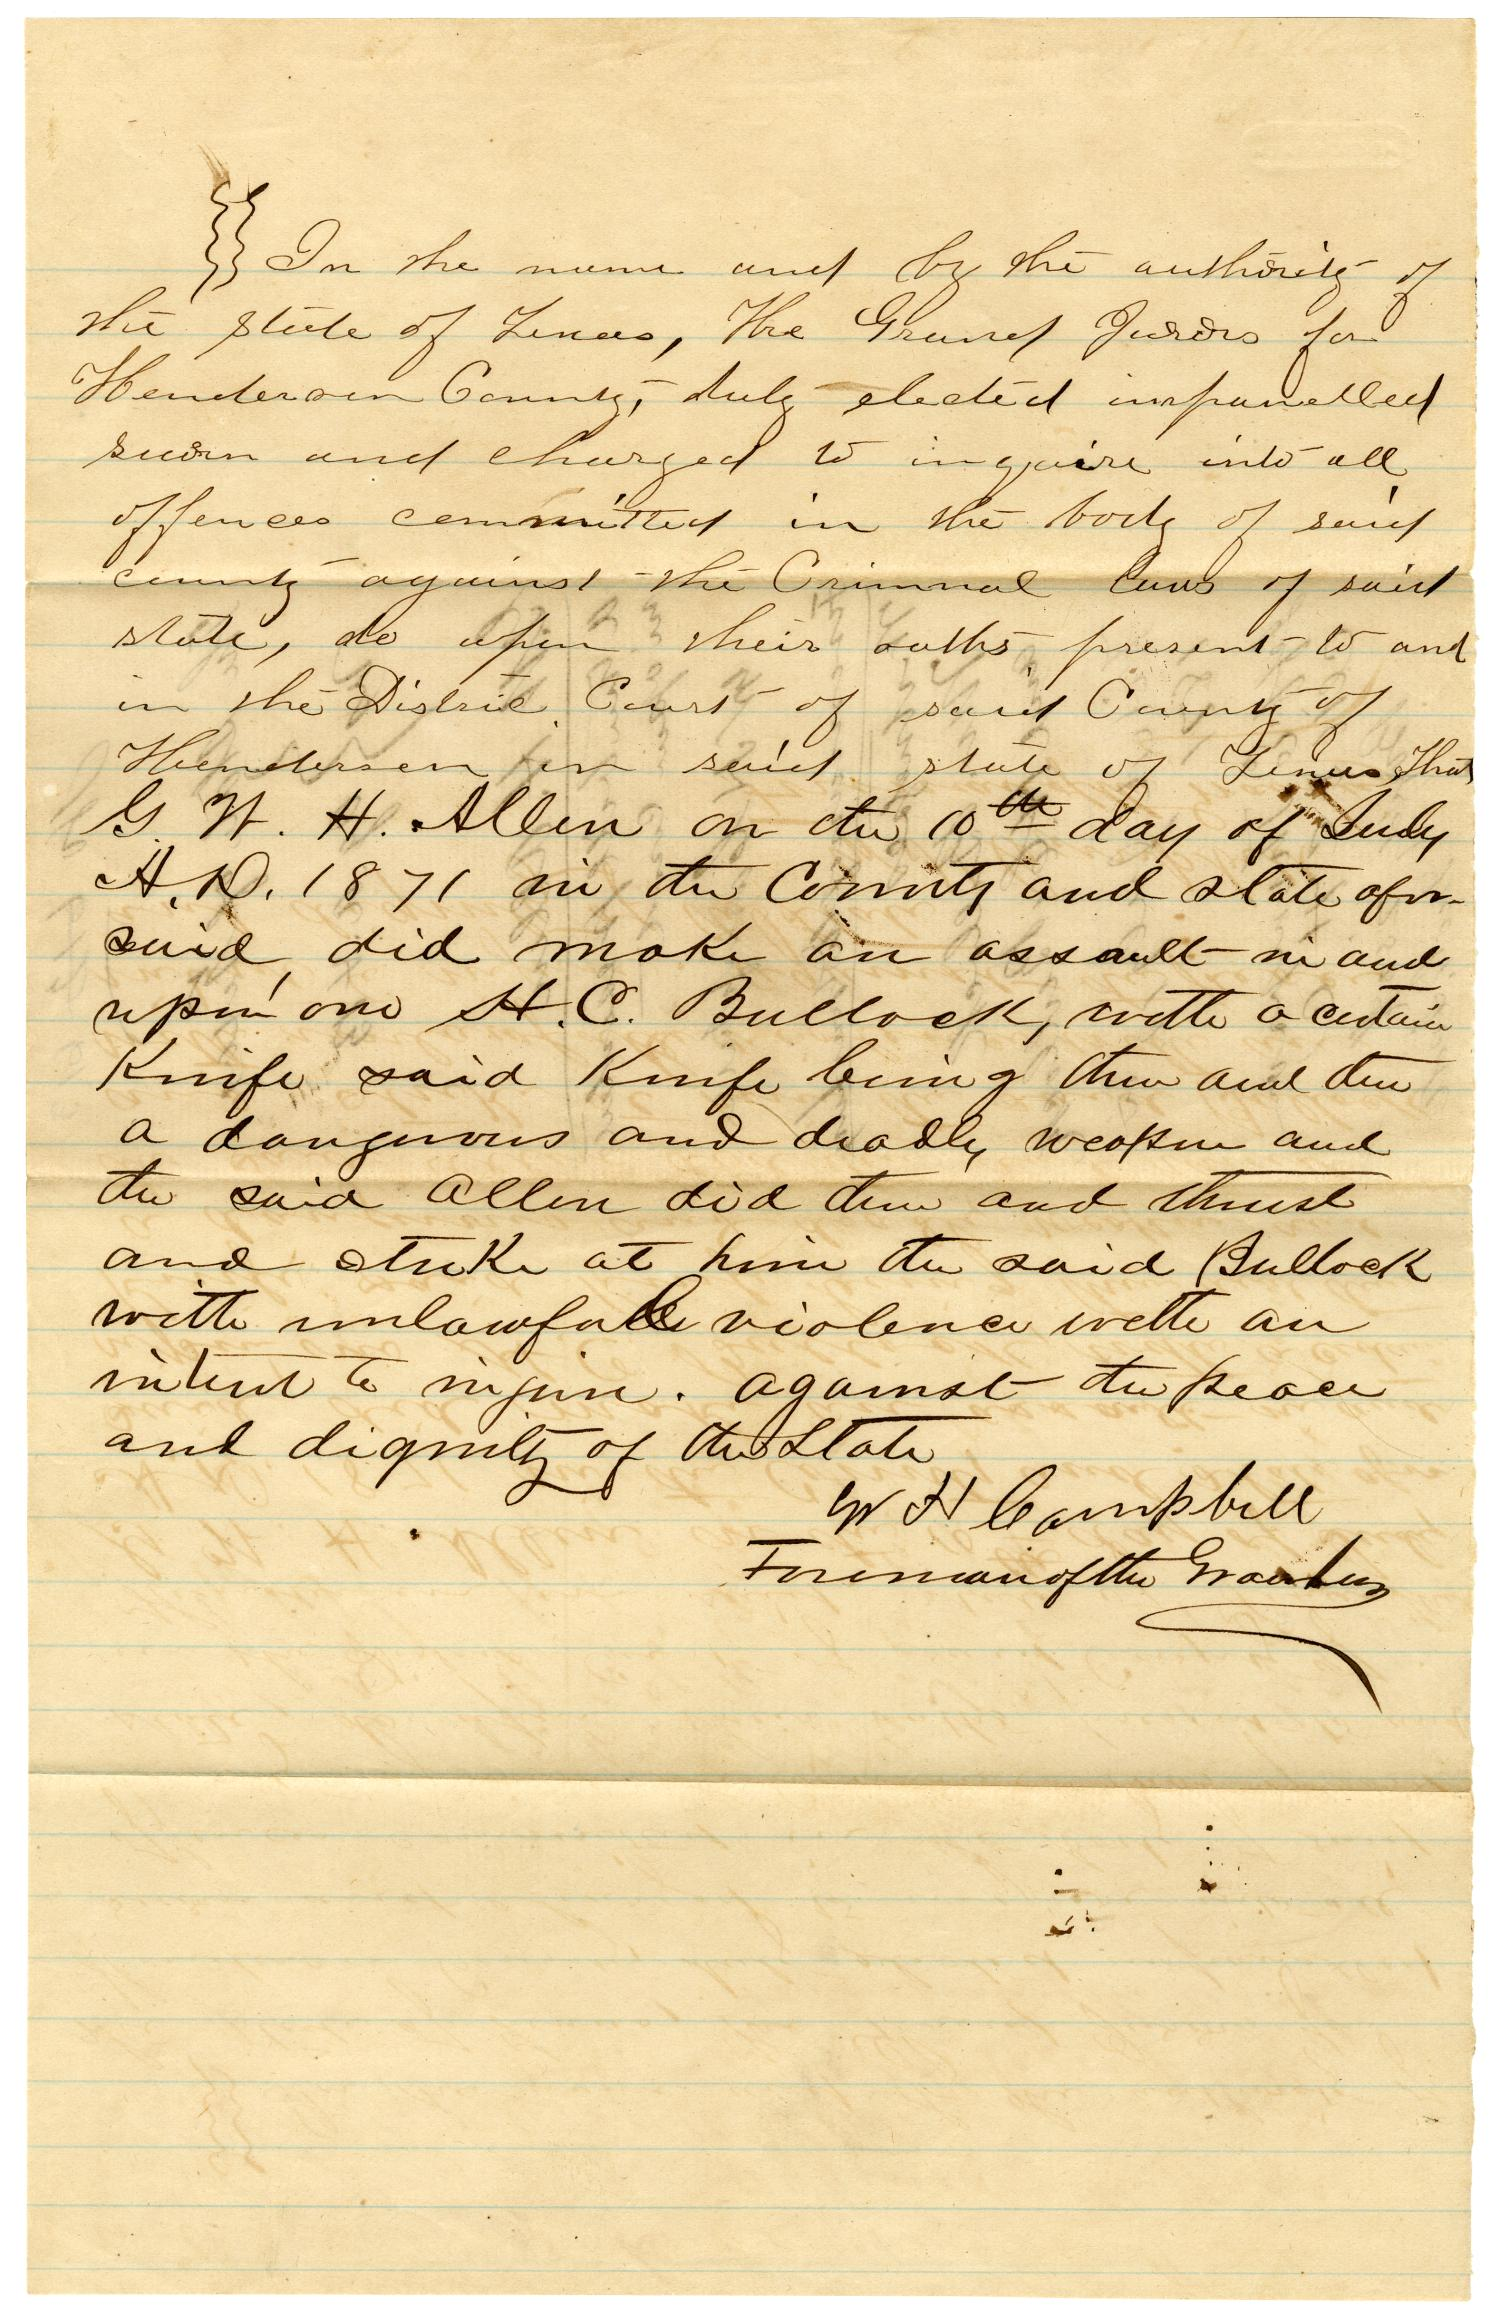 Documents pertaining to the case of The State of Texas vs. G. W. H. Allen, cause no. 613, 1871                                                                                                      [Sequence #]: 3 of 16